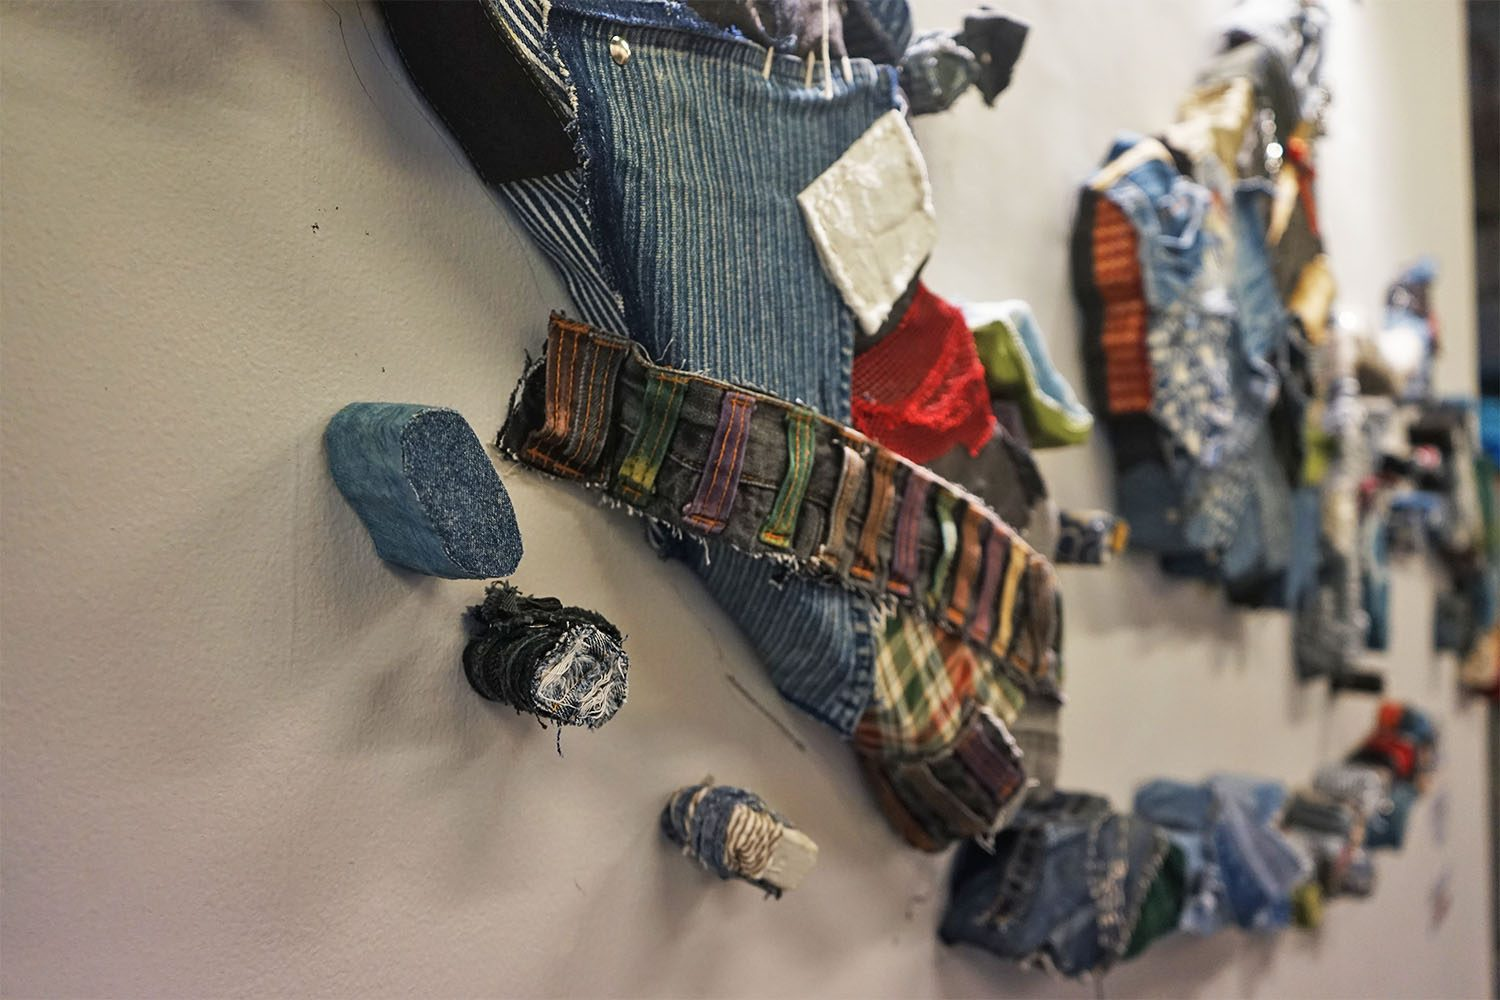 WALL OF FADES 2018 A DECADE OF WORK 7